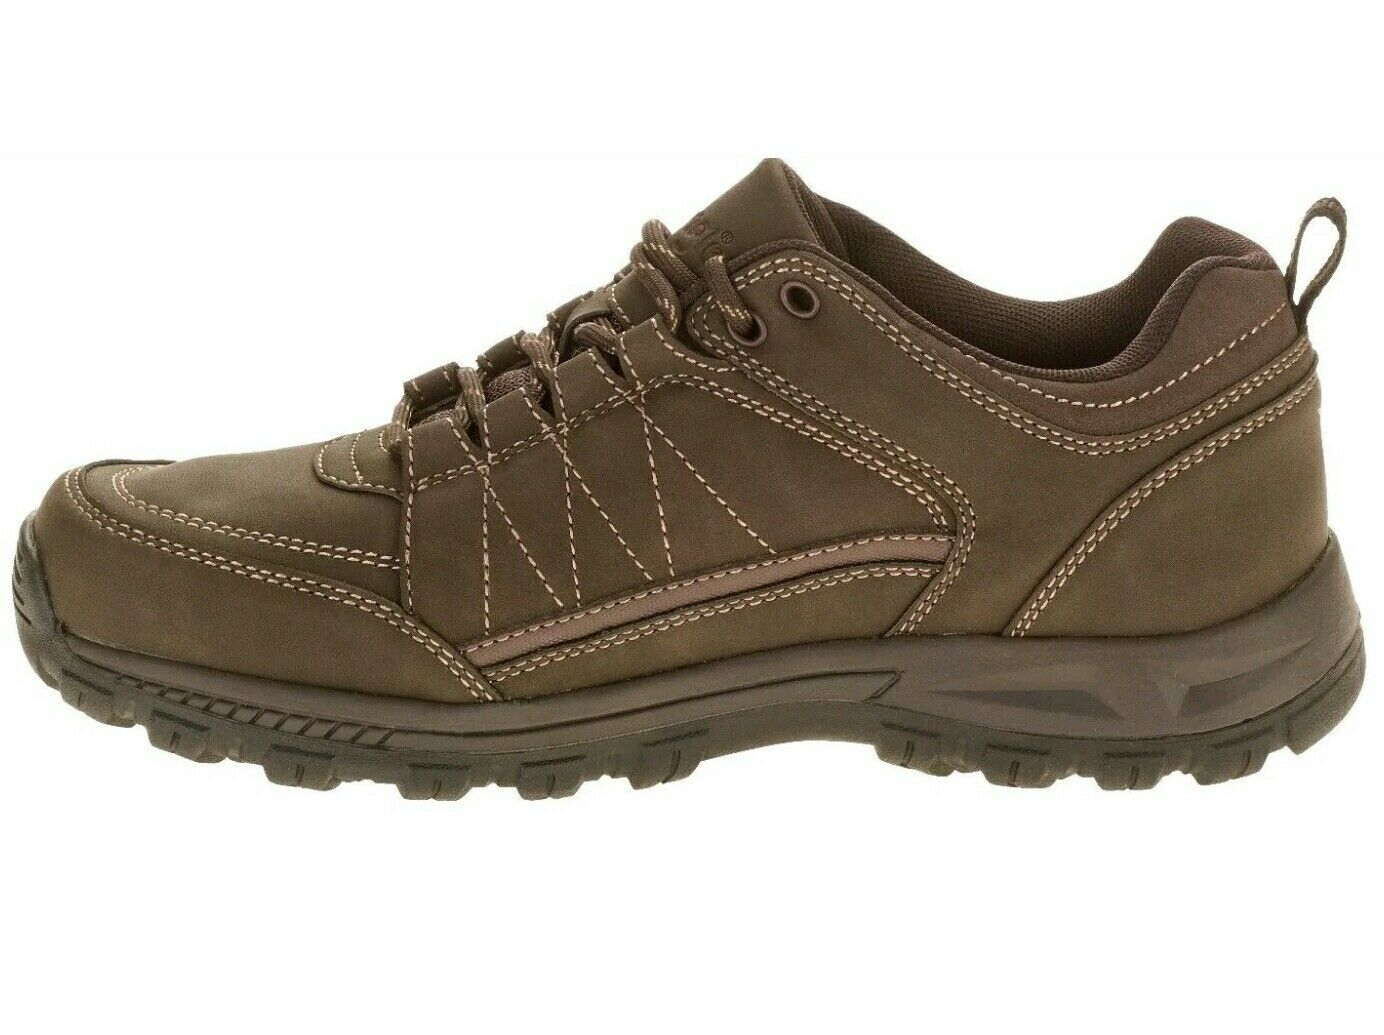 ... Wrangler Men s Memory Foam Black or Brown Casual Rugged Oxford Shoes   7-13 фото ... bab48bd716d